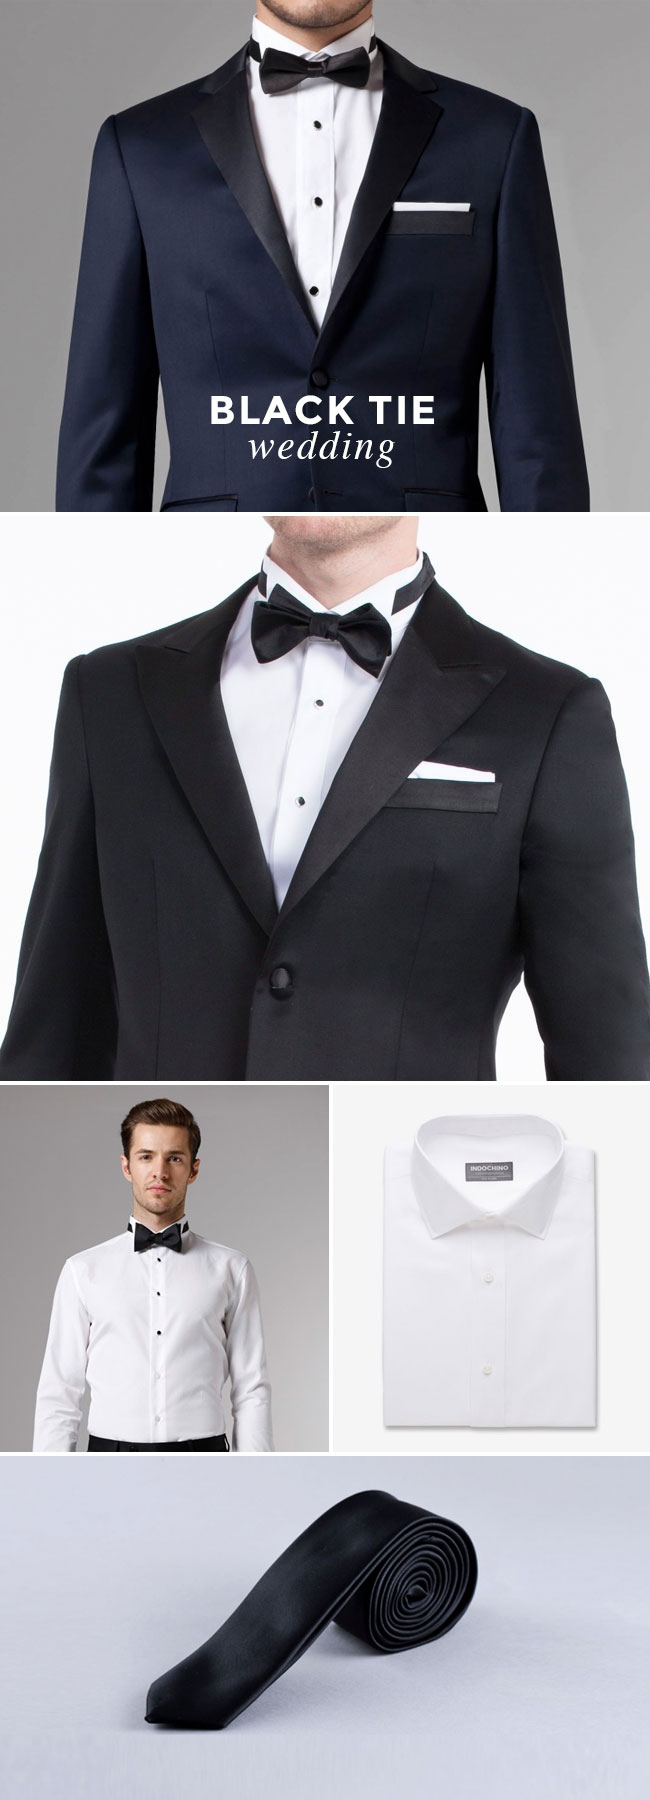 What to Wear to A Wedding - Guy Edition - Black Tie Wedding